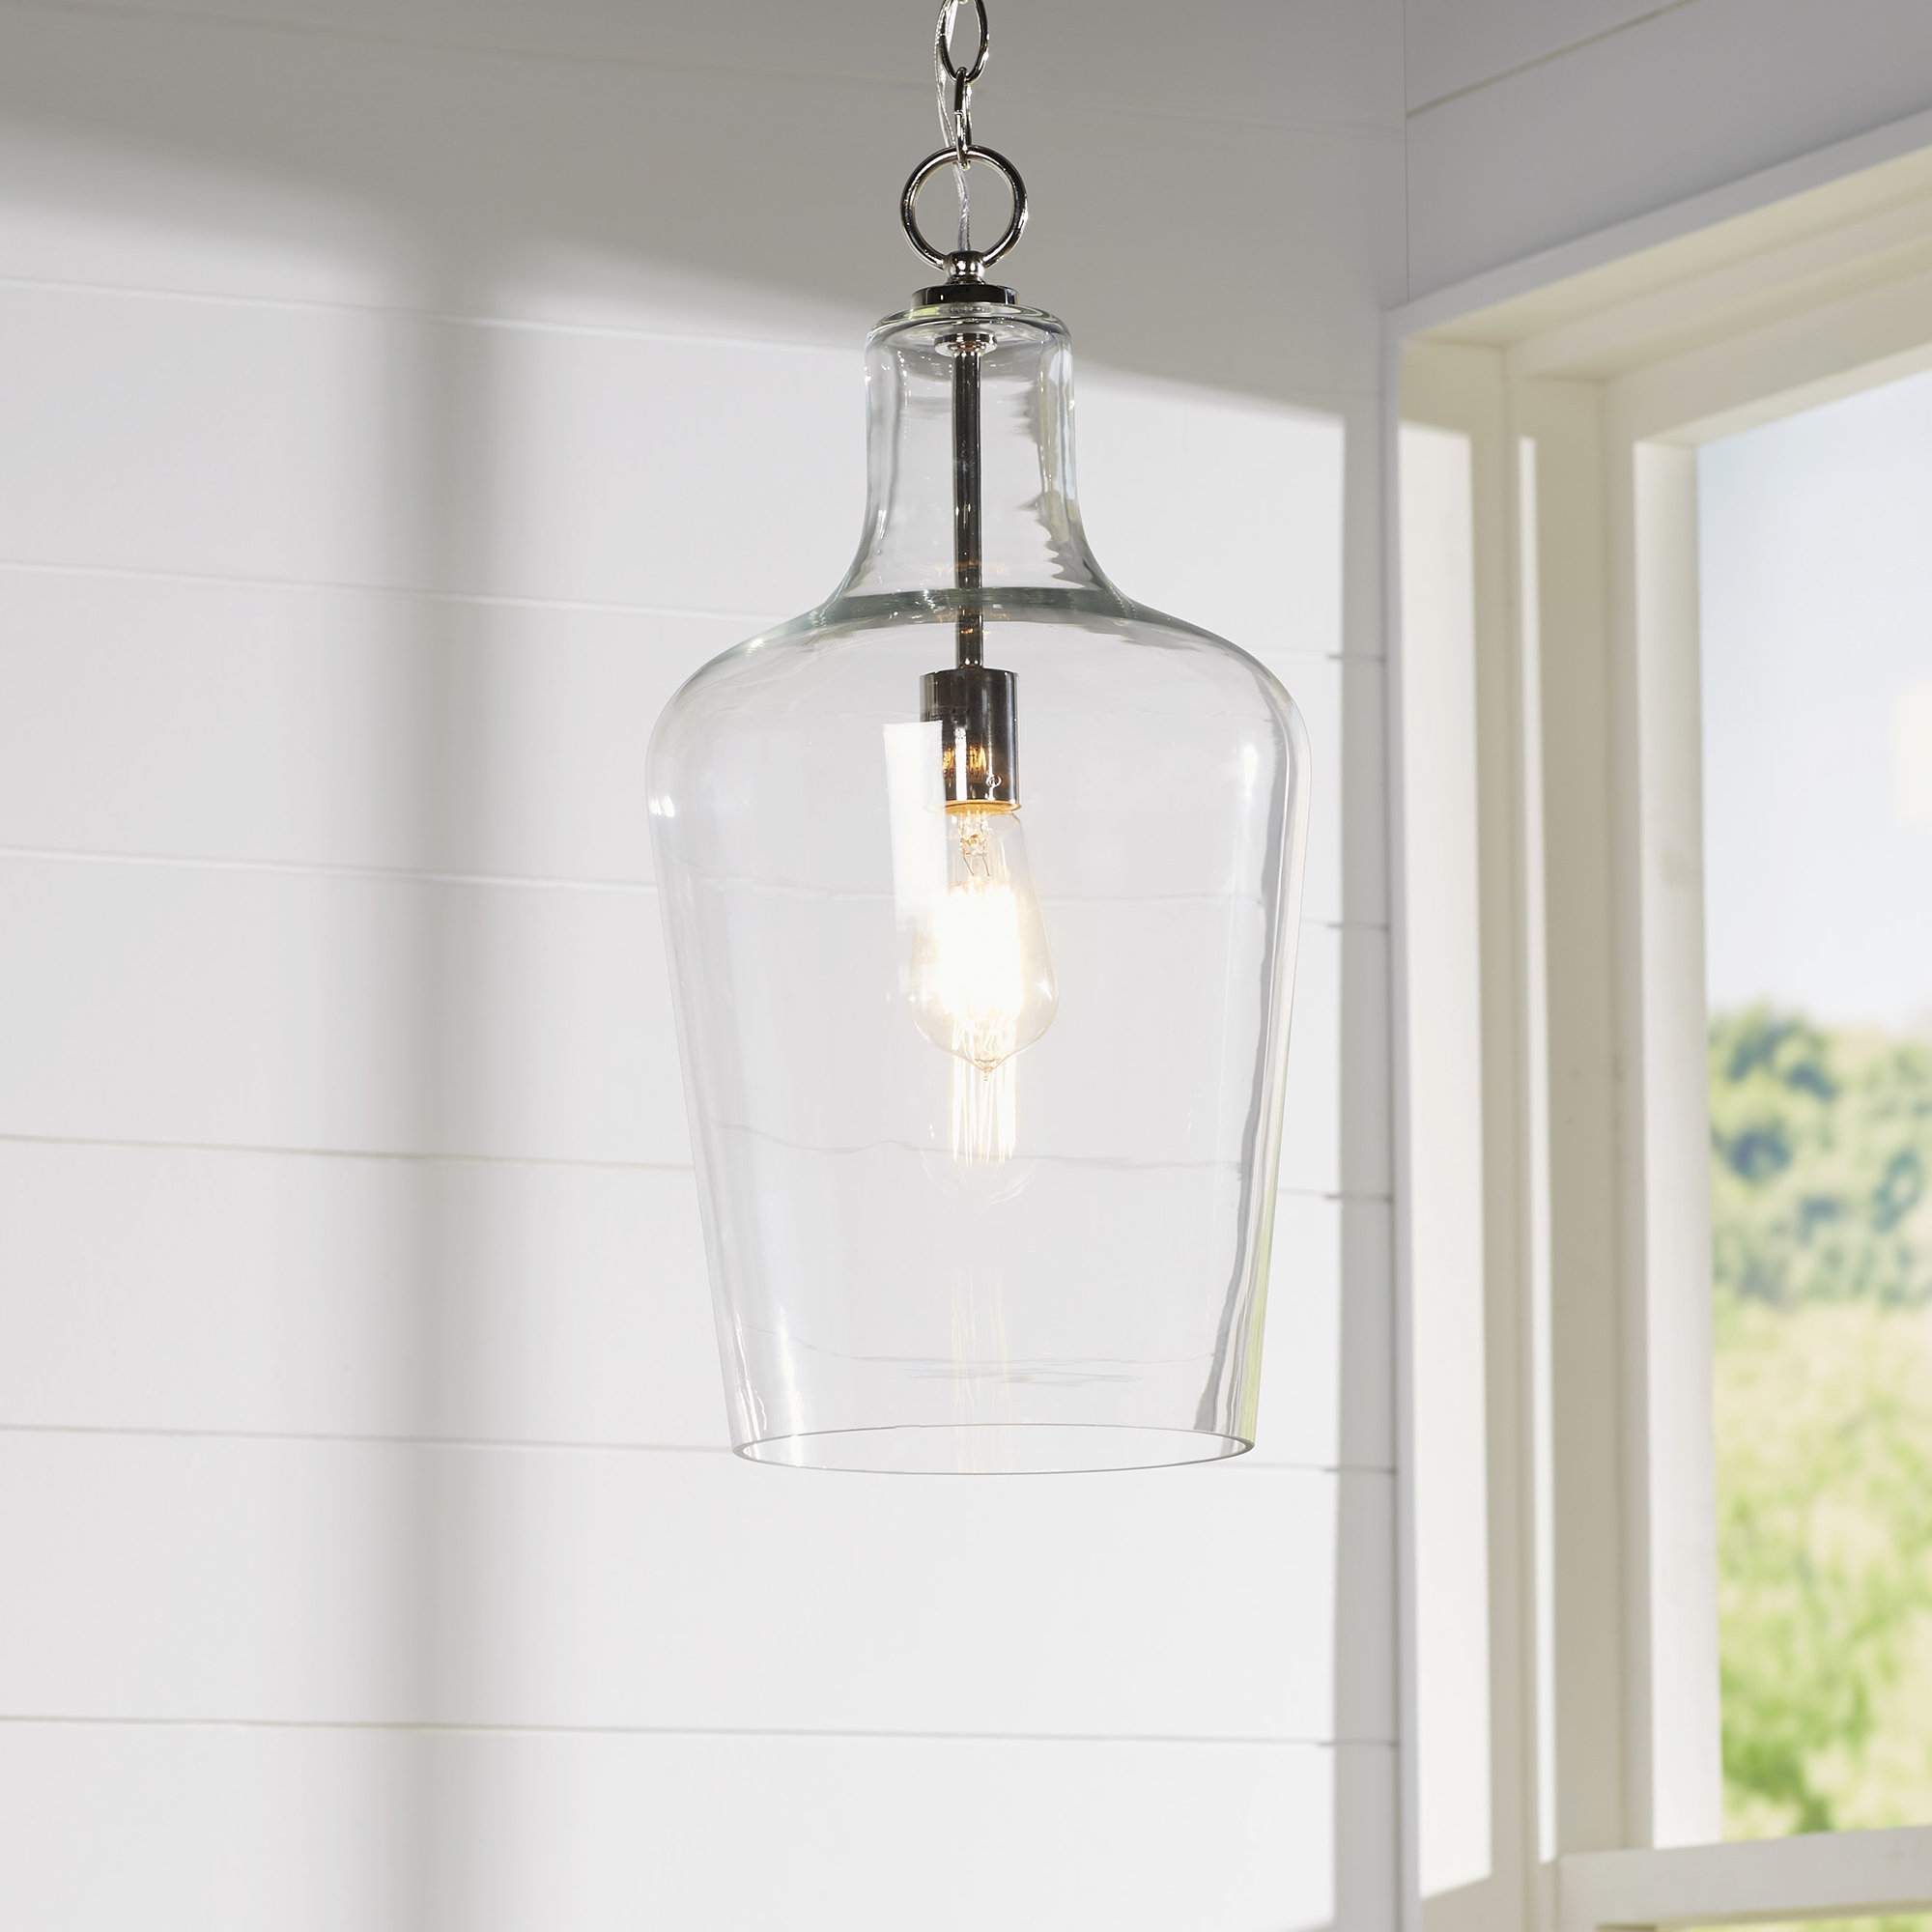 Nadine 1 Light Single Schoolhouse Pendants Throughout 2019 Carey 1 Light Single Bell Pendant (Gallery 17 of 20)